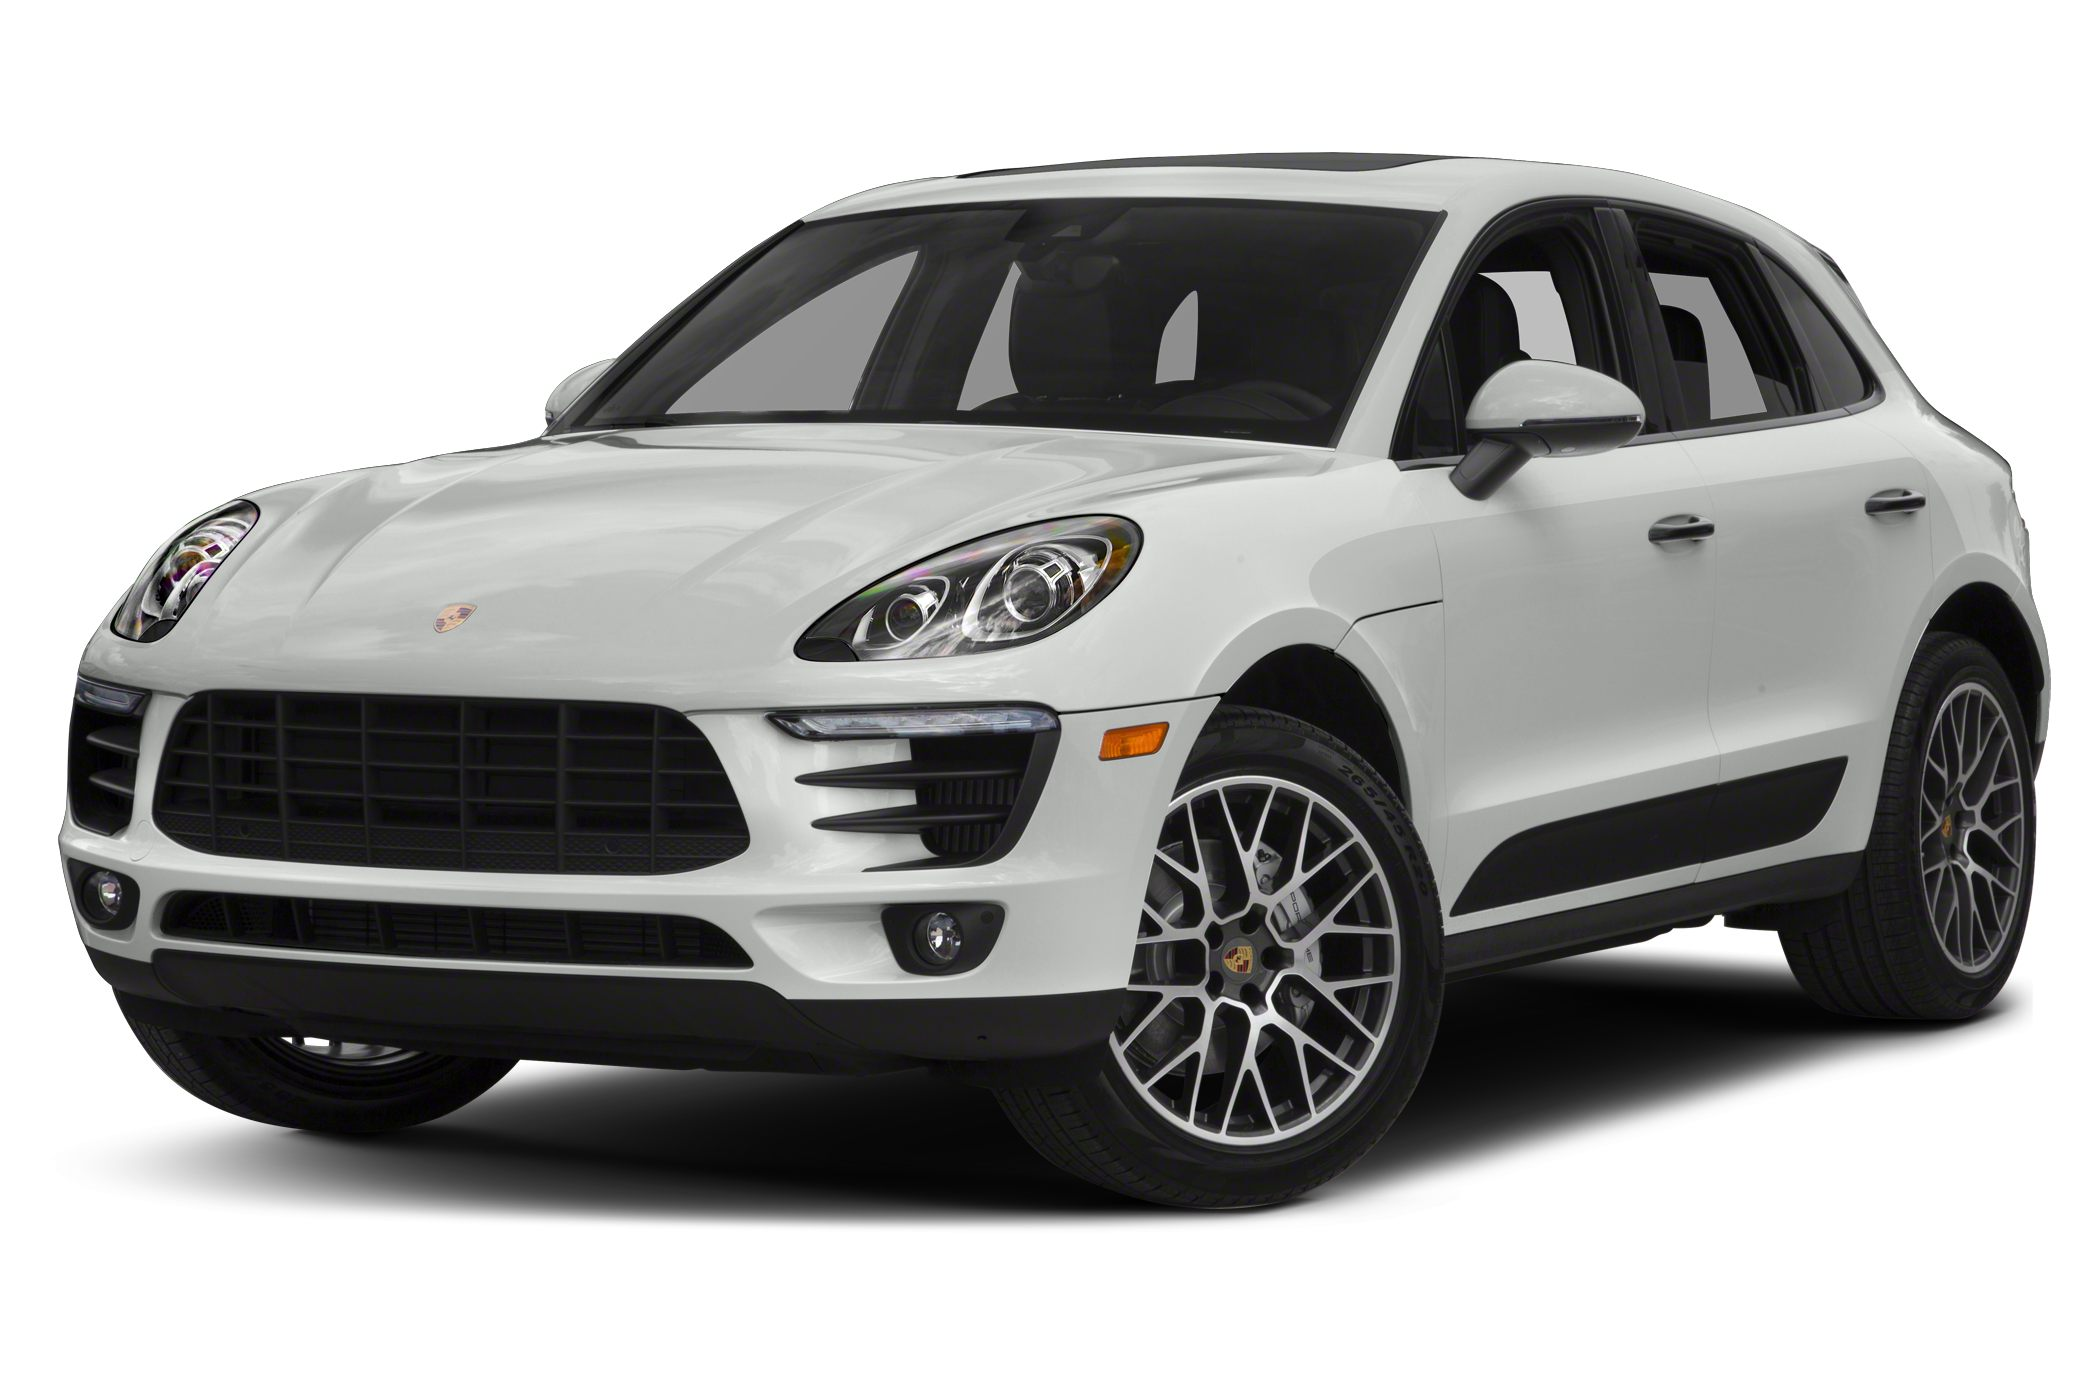 2018 Porsche Macan S 4dr All wheel Drive Specs and Prices